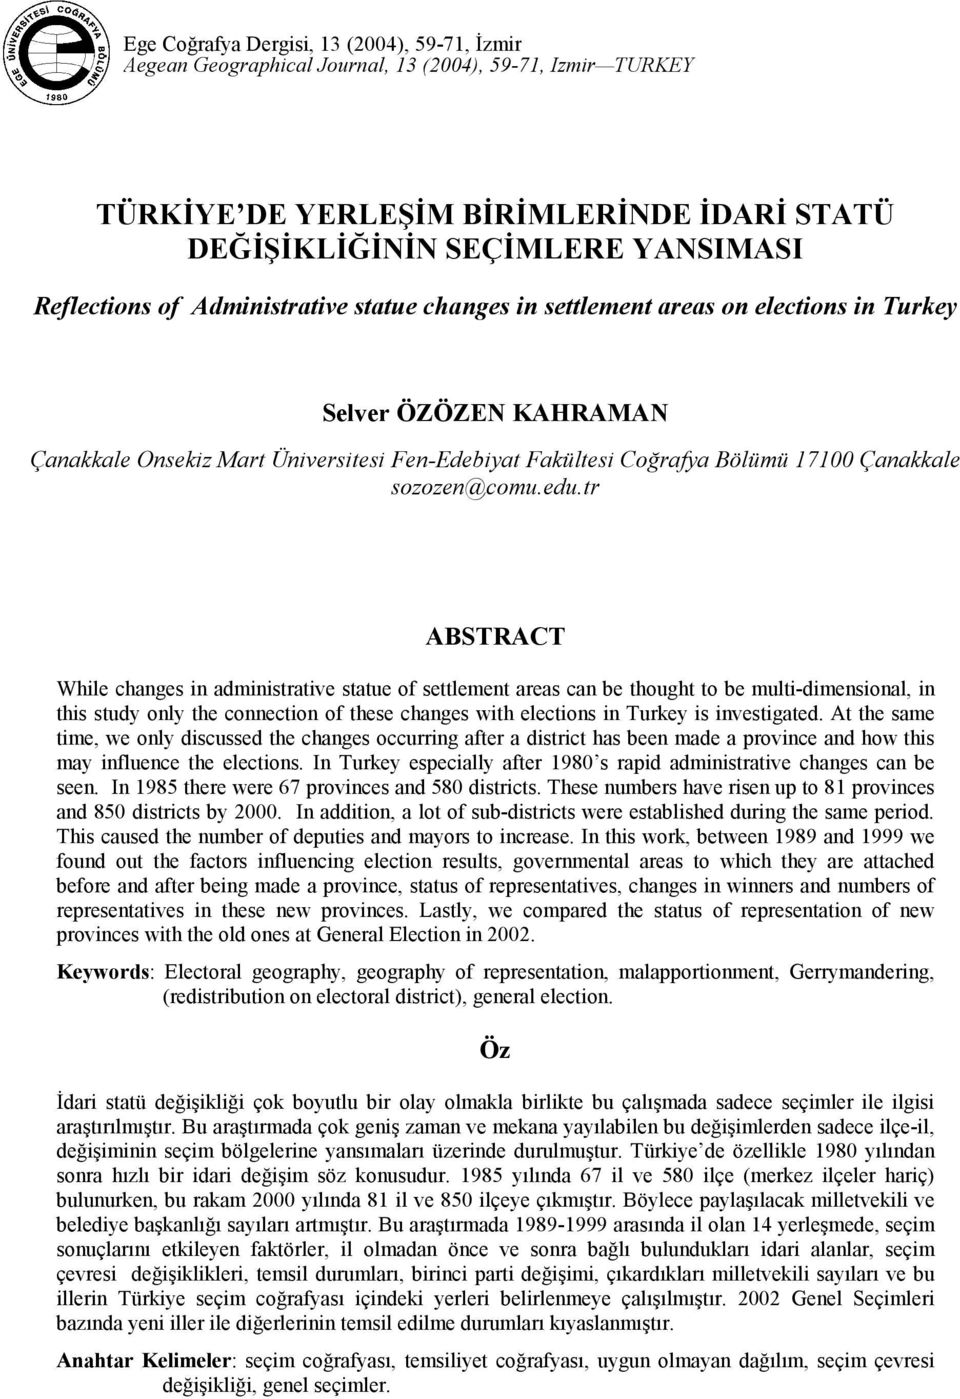 tr ABSTRACT While changes in administrative statue of settlement areas can be thought to be multi-dimensional, in this study only the connection of these changes with elections in Turkey is